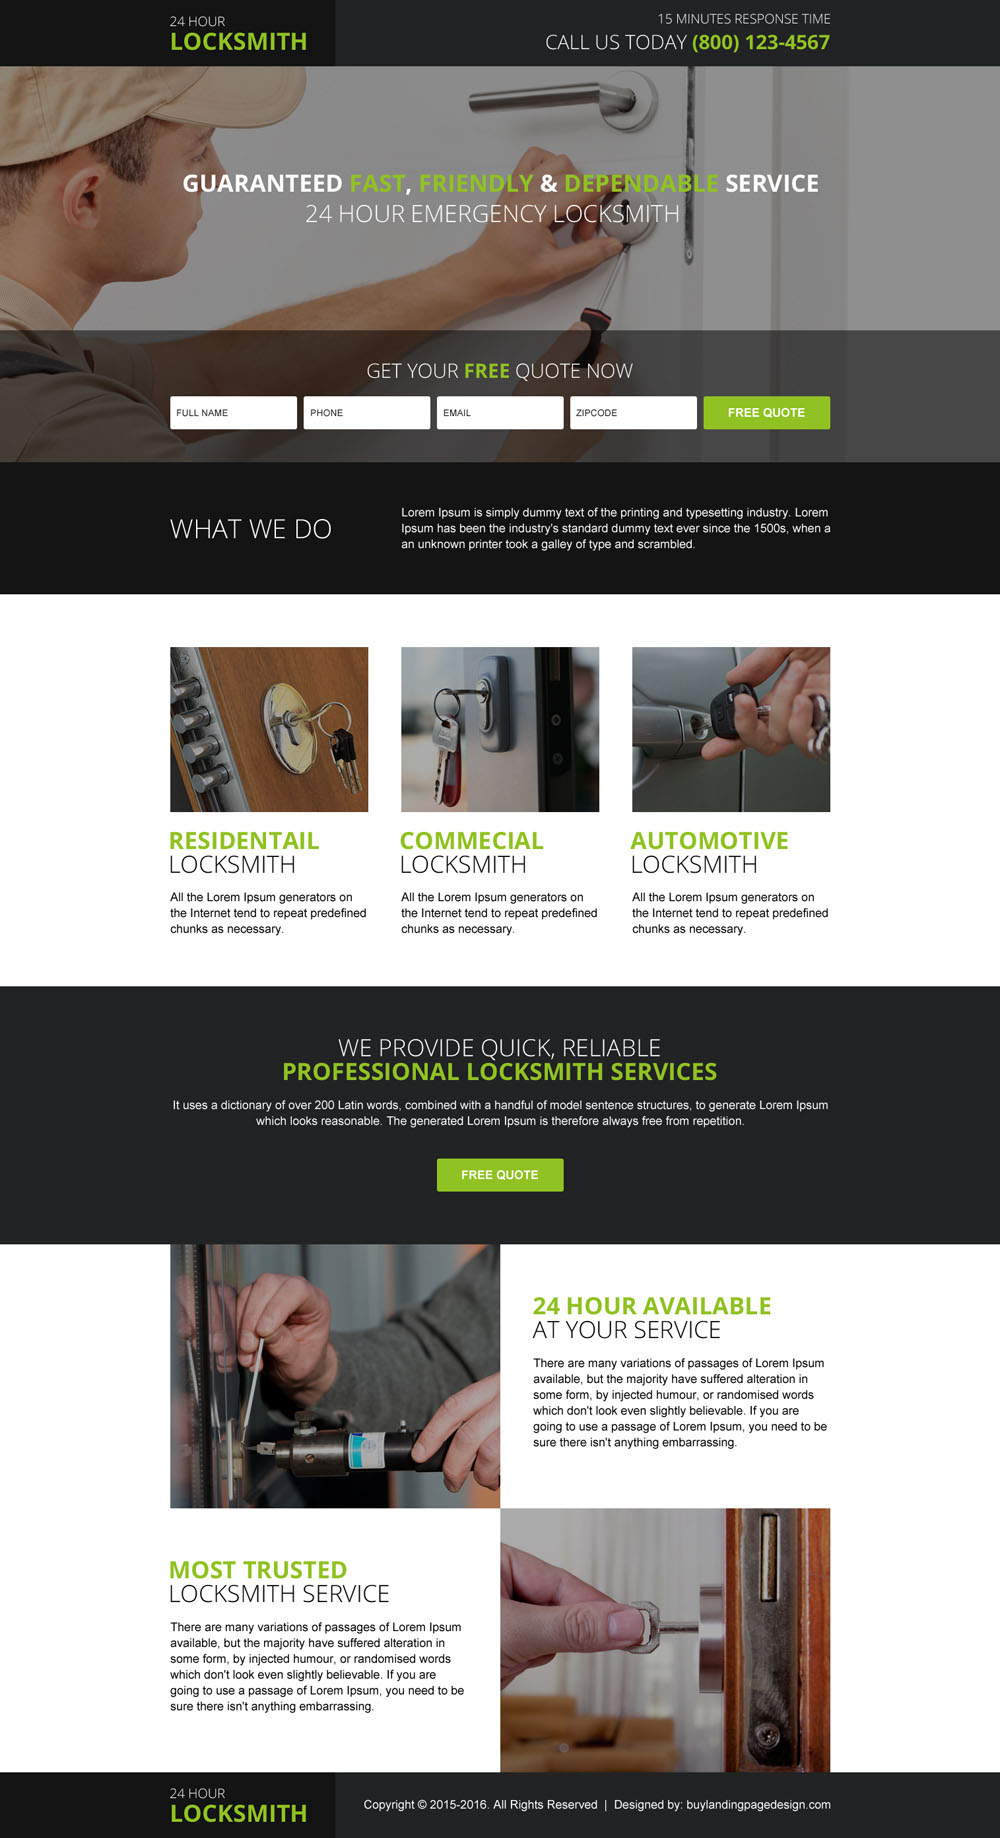 residential-commercial-and-automotive-locksmith-free-quote-lead-gen-landing-page-005